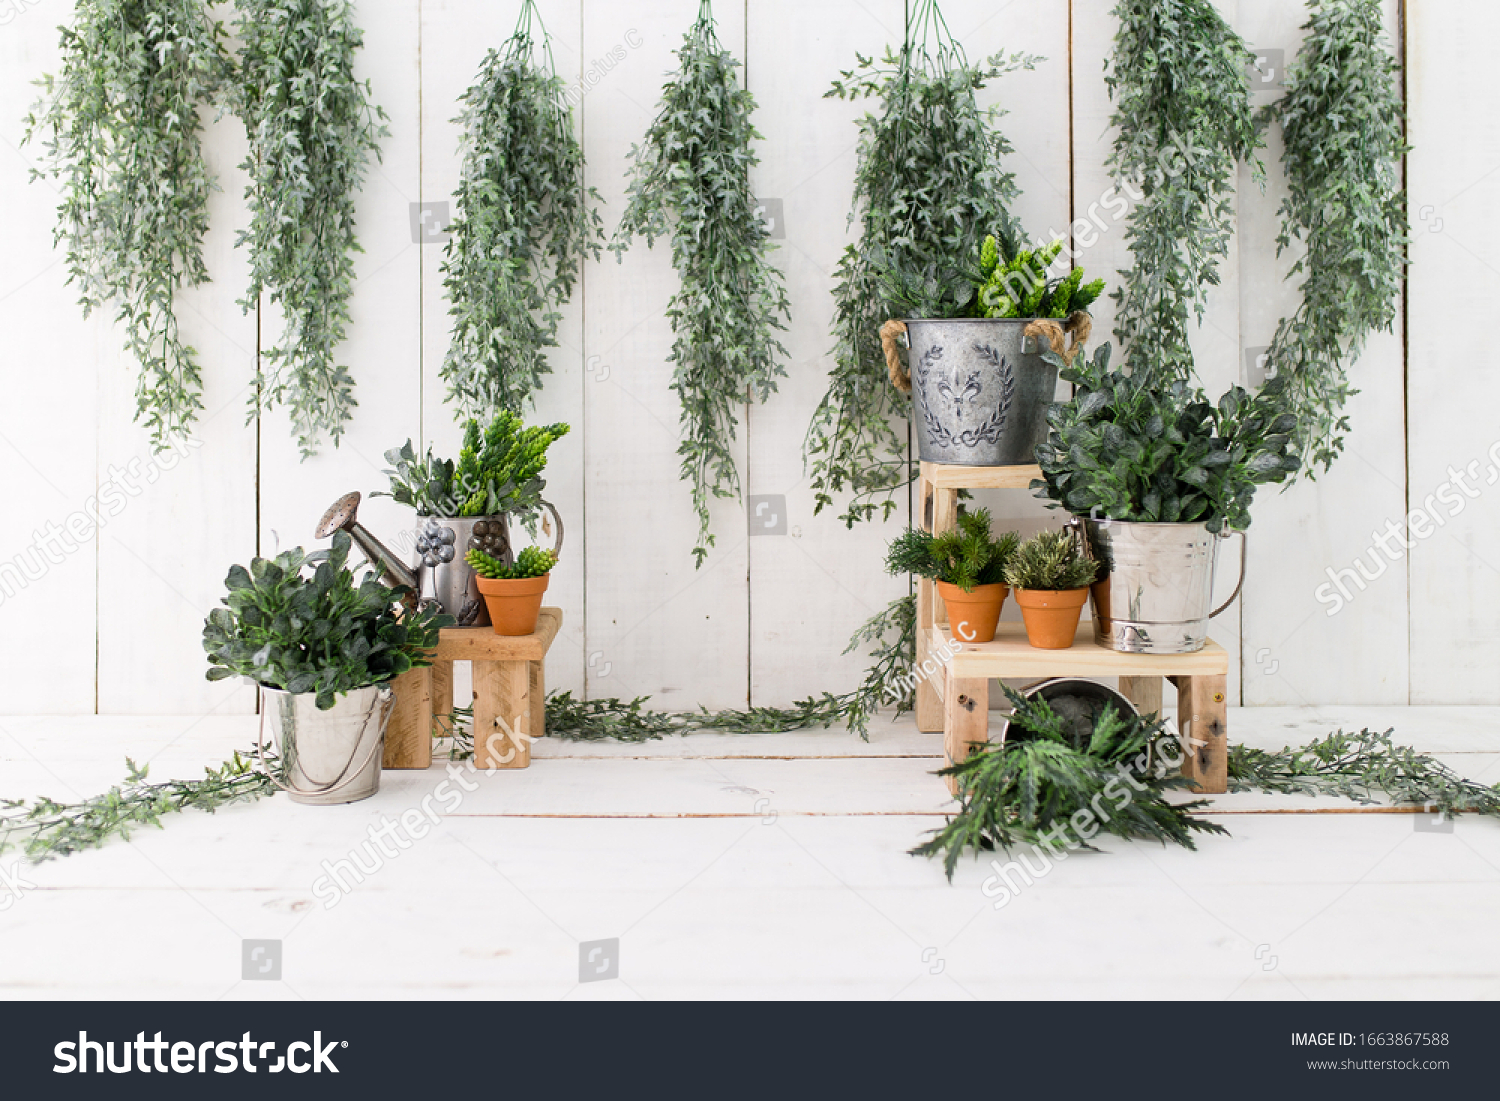 Garden backdrop for photosession. Garden background. Backdrop for baby sitter session. #1663867588